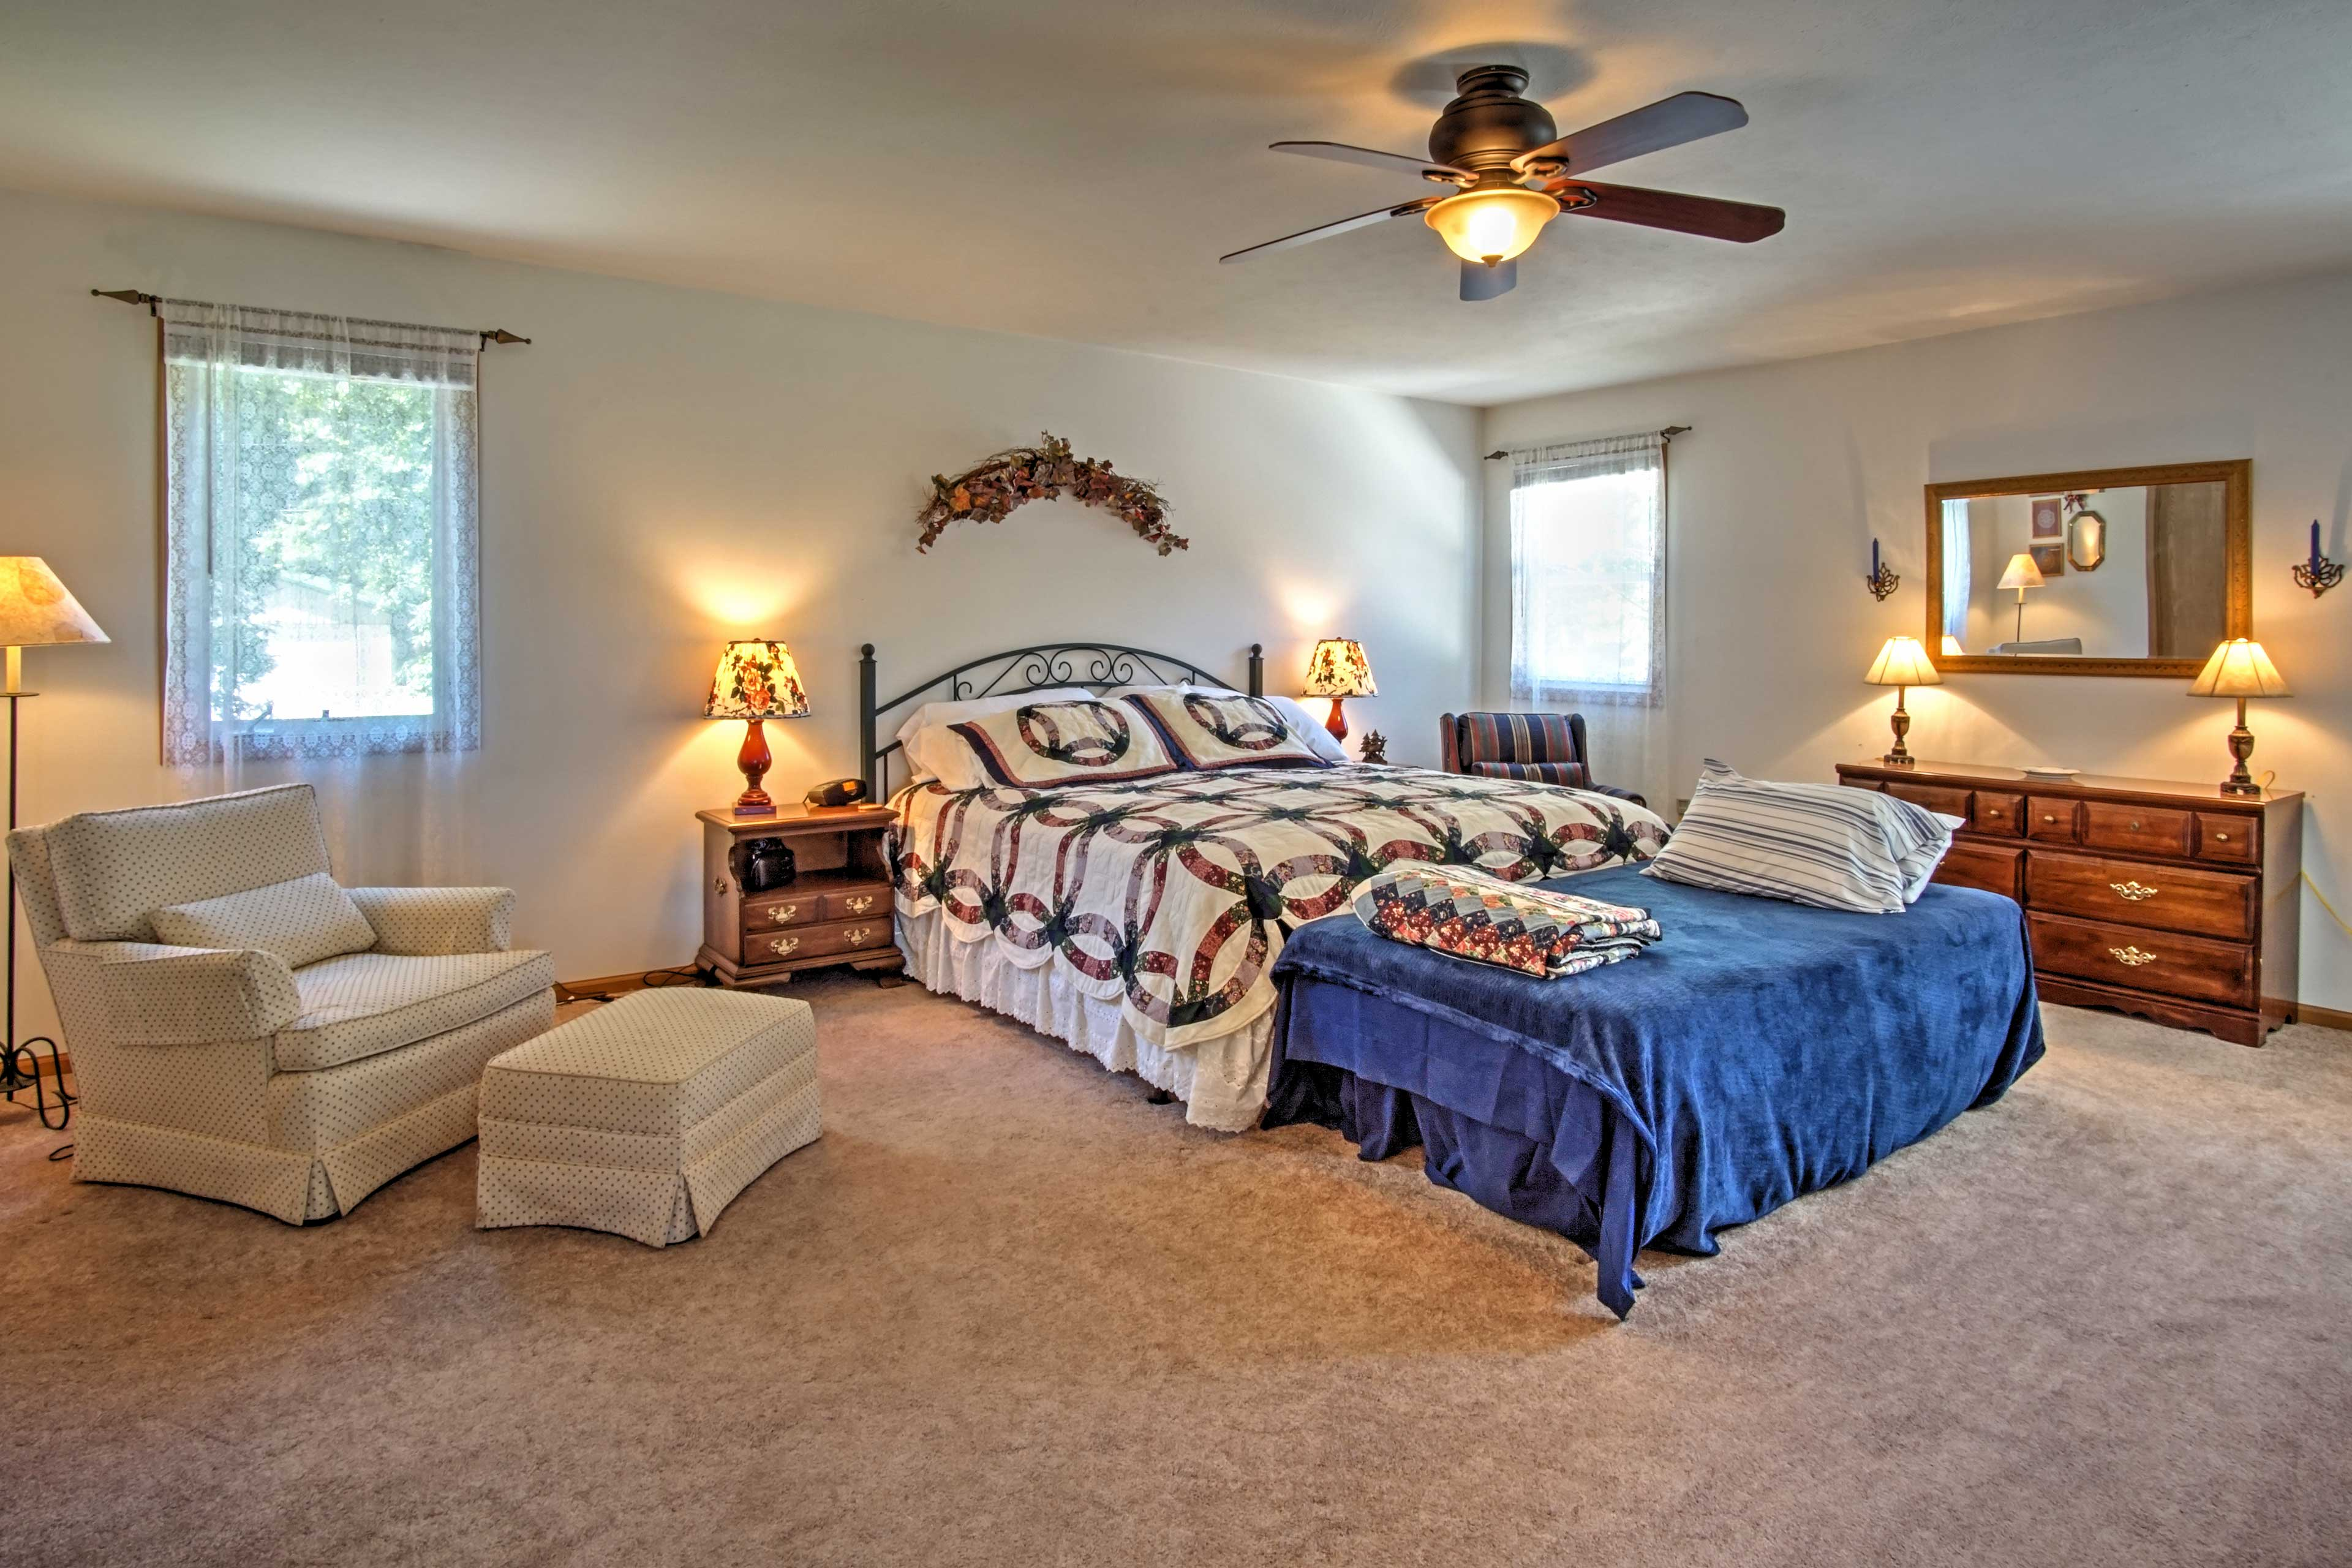 Sprawl out on the king bed in the master, which features 2 twin beds and a TV.